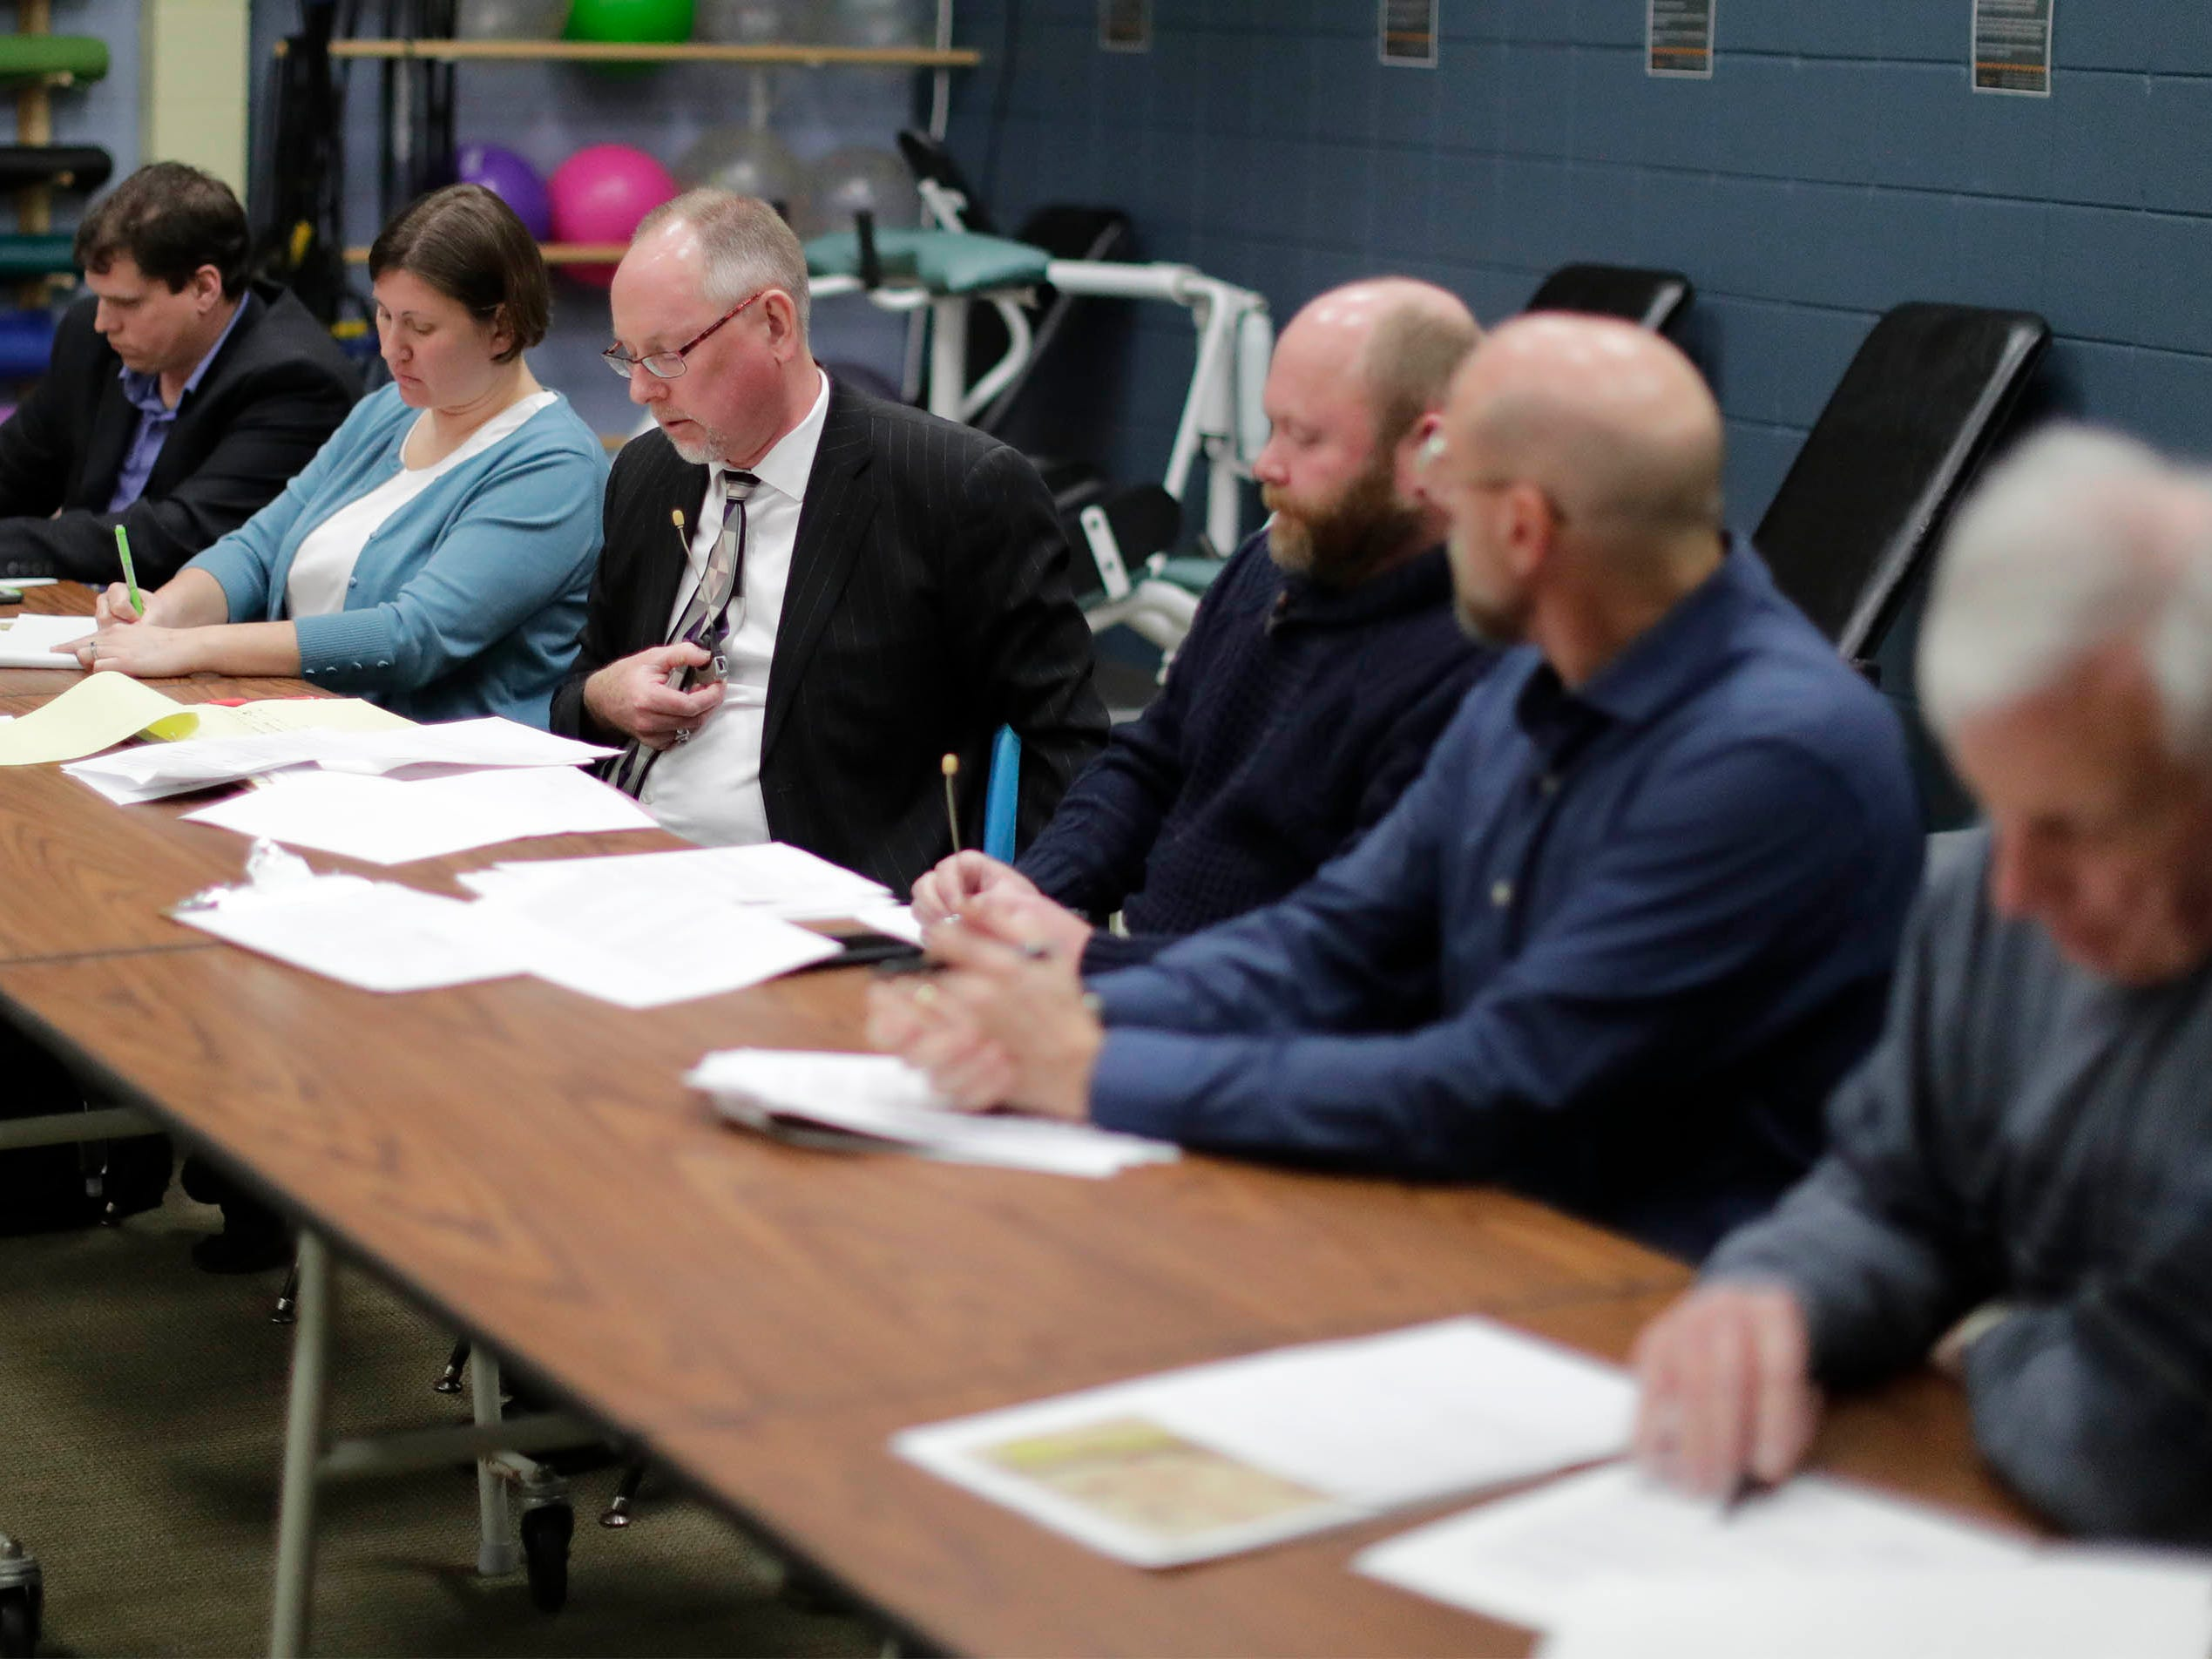 Members of the Historic Preservation Commission seated at the table during a meeting which gave the backers of the building 90 days to get its plans off the ground, Tuesday, March 19, 2019, in Sheboygan, Wis.